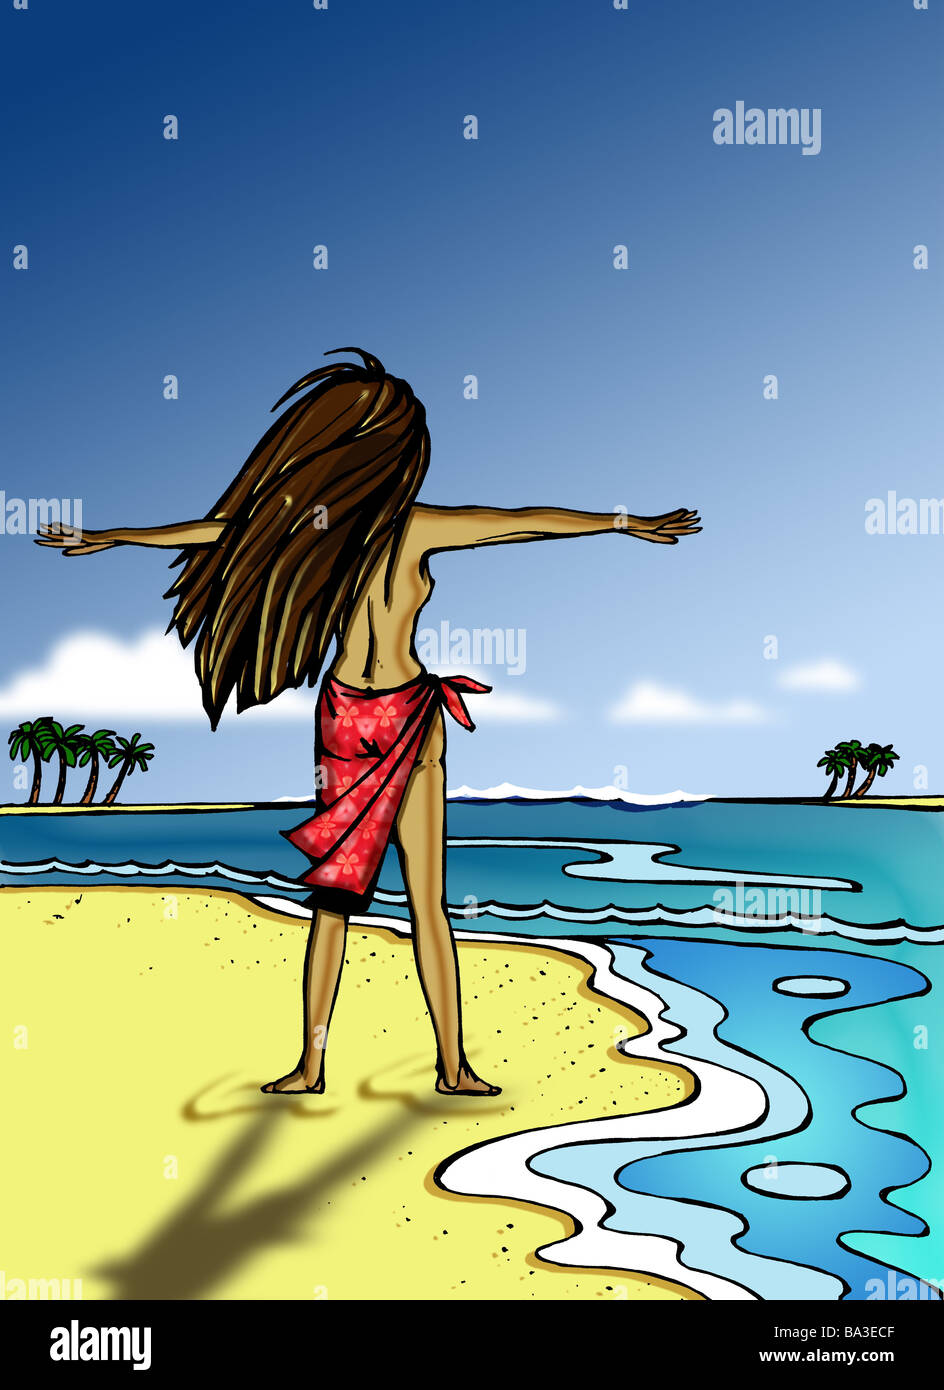 Illustration manga sandy beach woman young long haired above without illustration manga sandy beach woman young long haired above without pareo poor wind extend back opinion graphics drawing voltagebd Choice Image